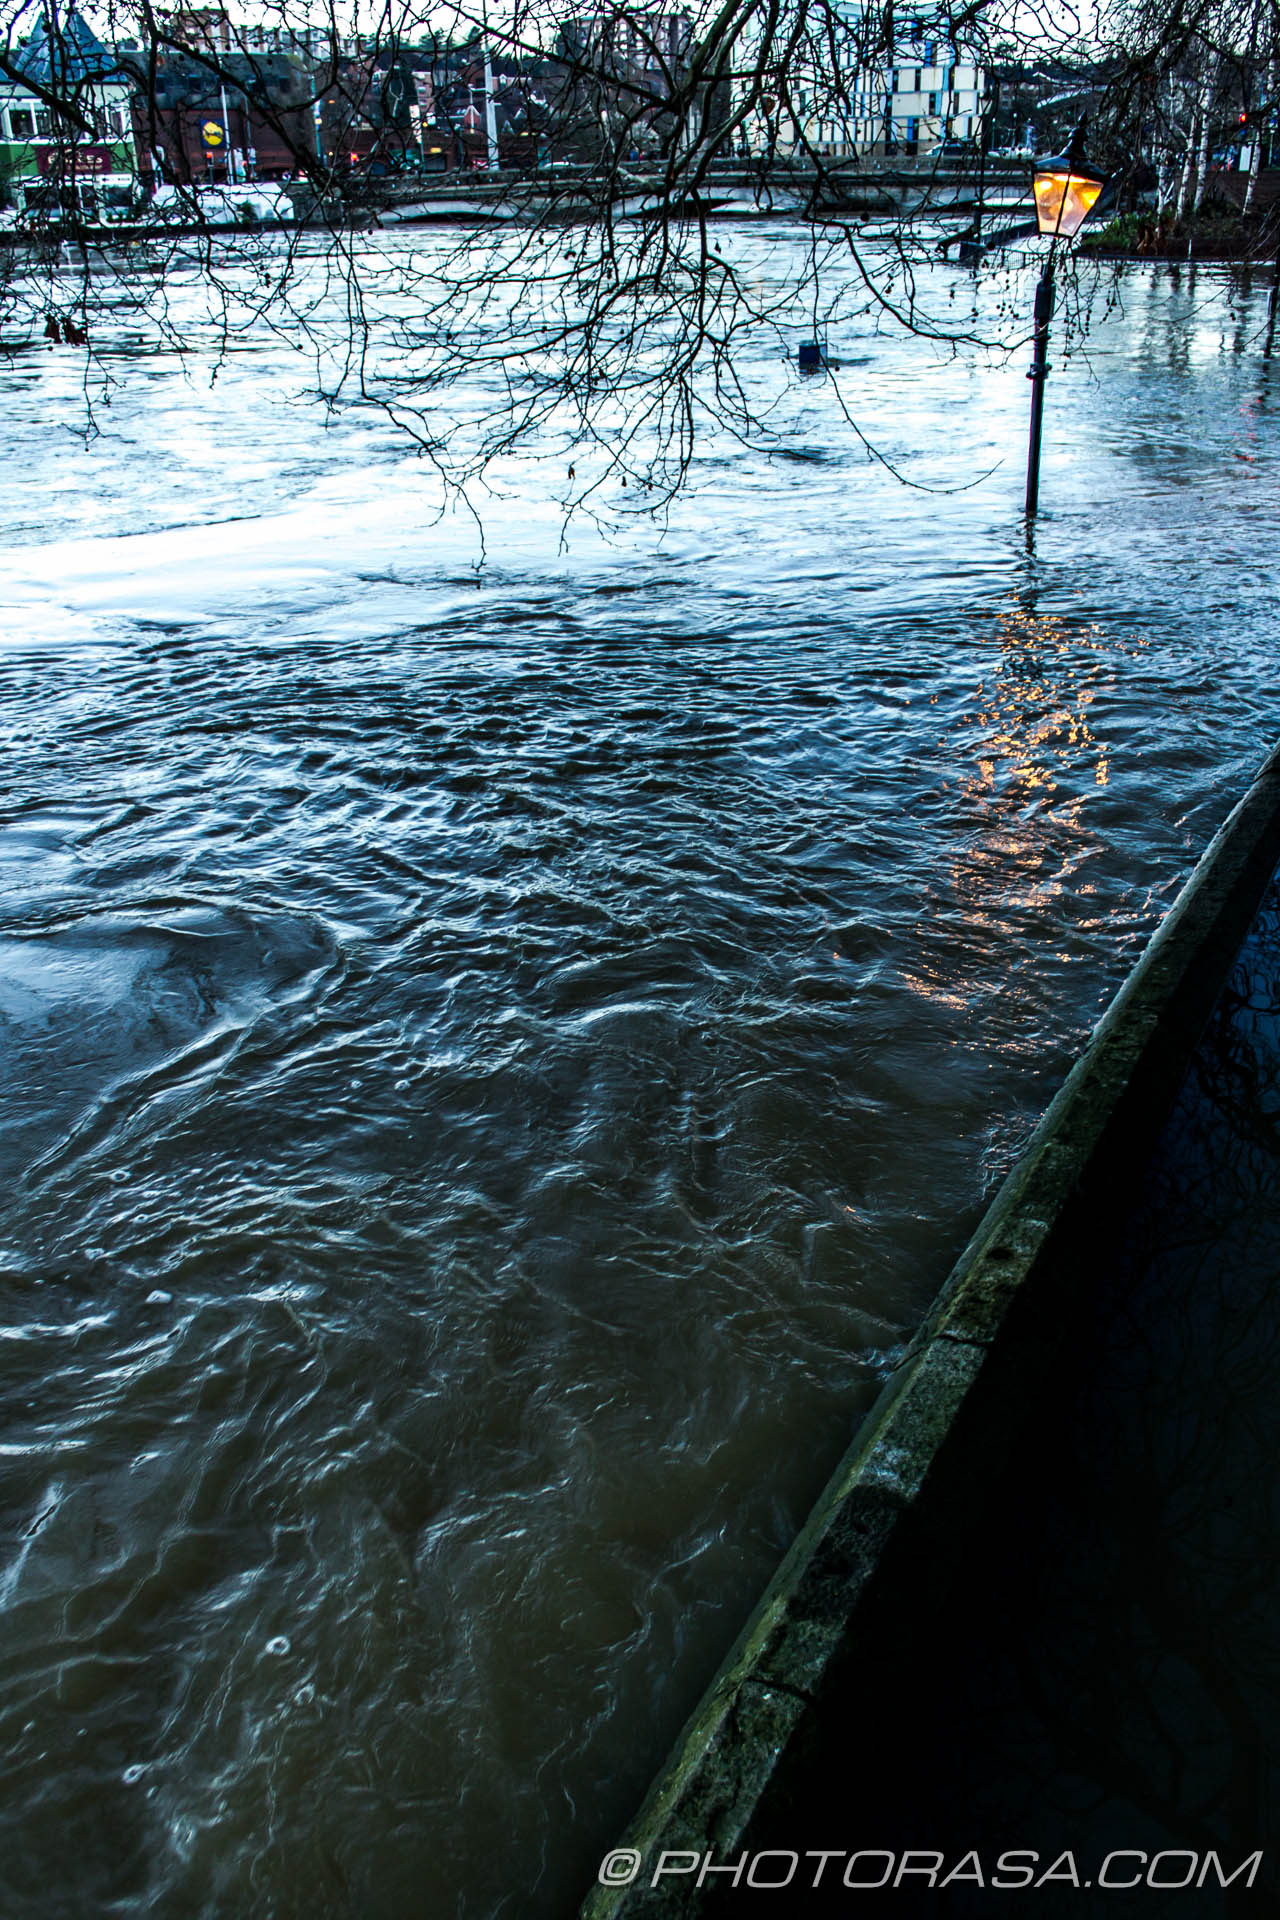 http://photorasa.com/wet-xmas-maidstone-river-medway-floods-town-centre/swirling-currents-near-a-street-light/